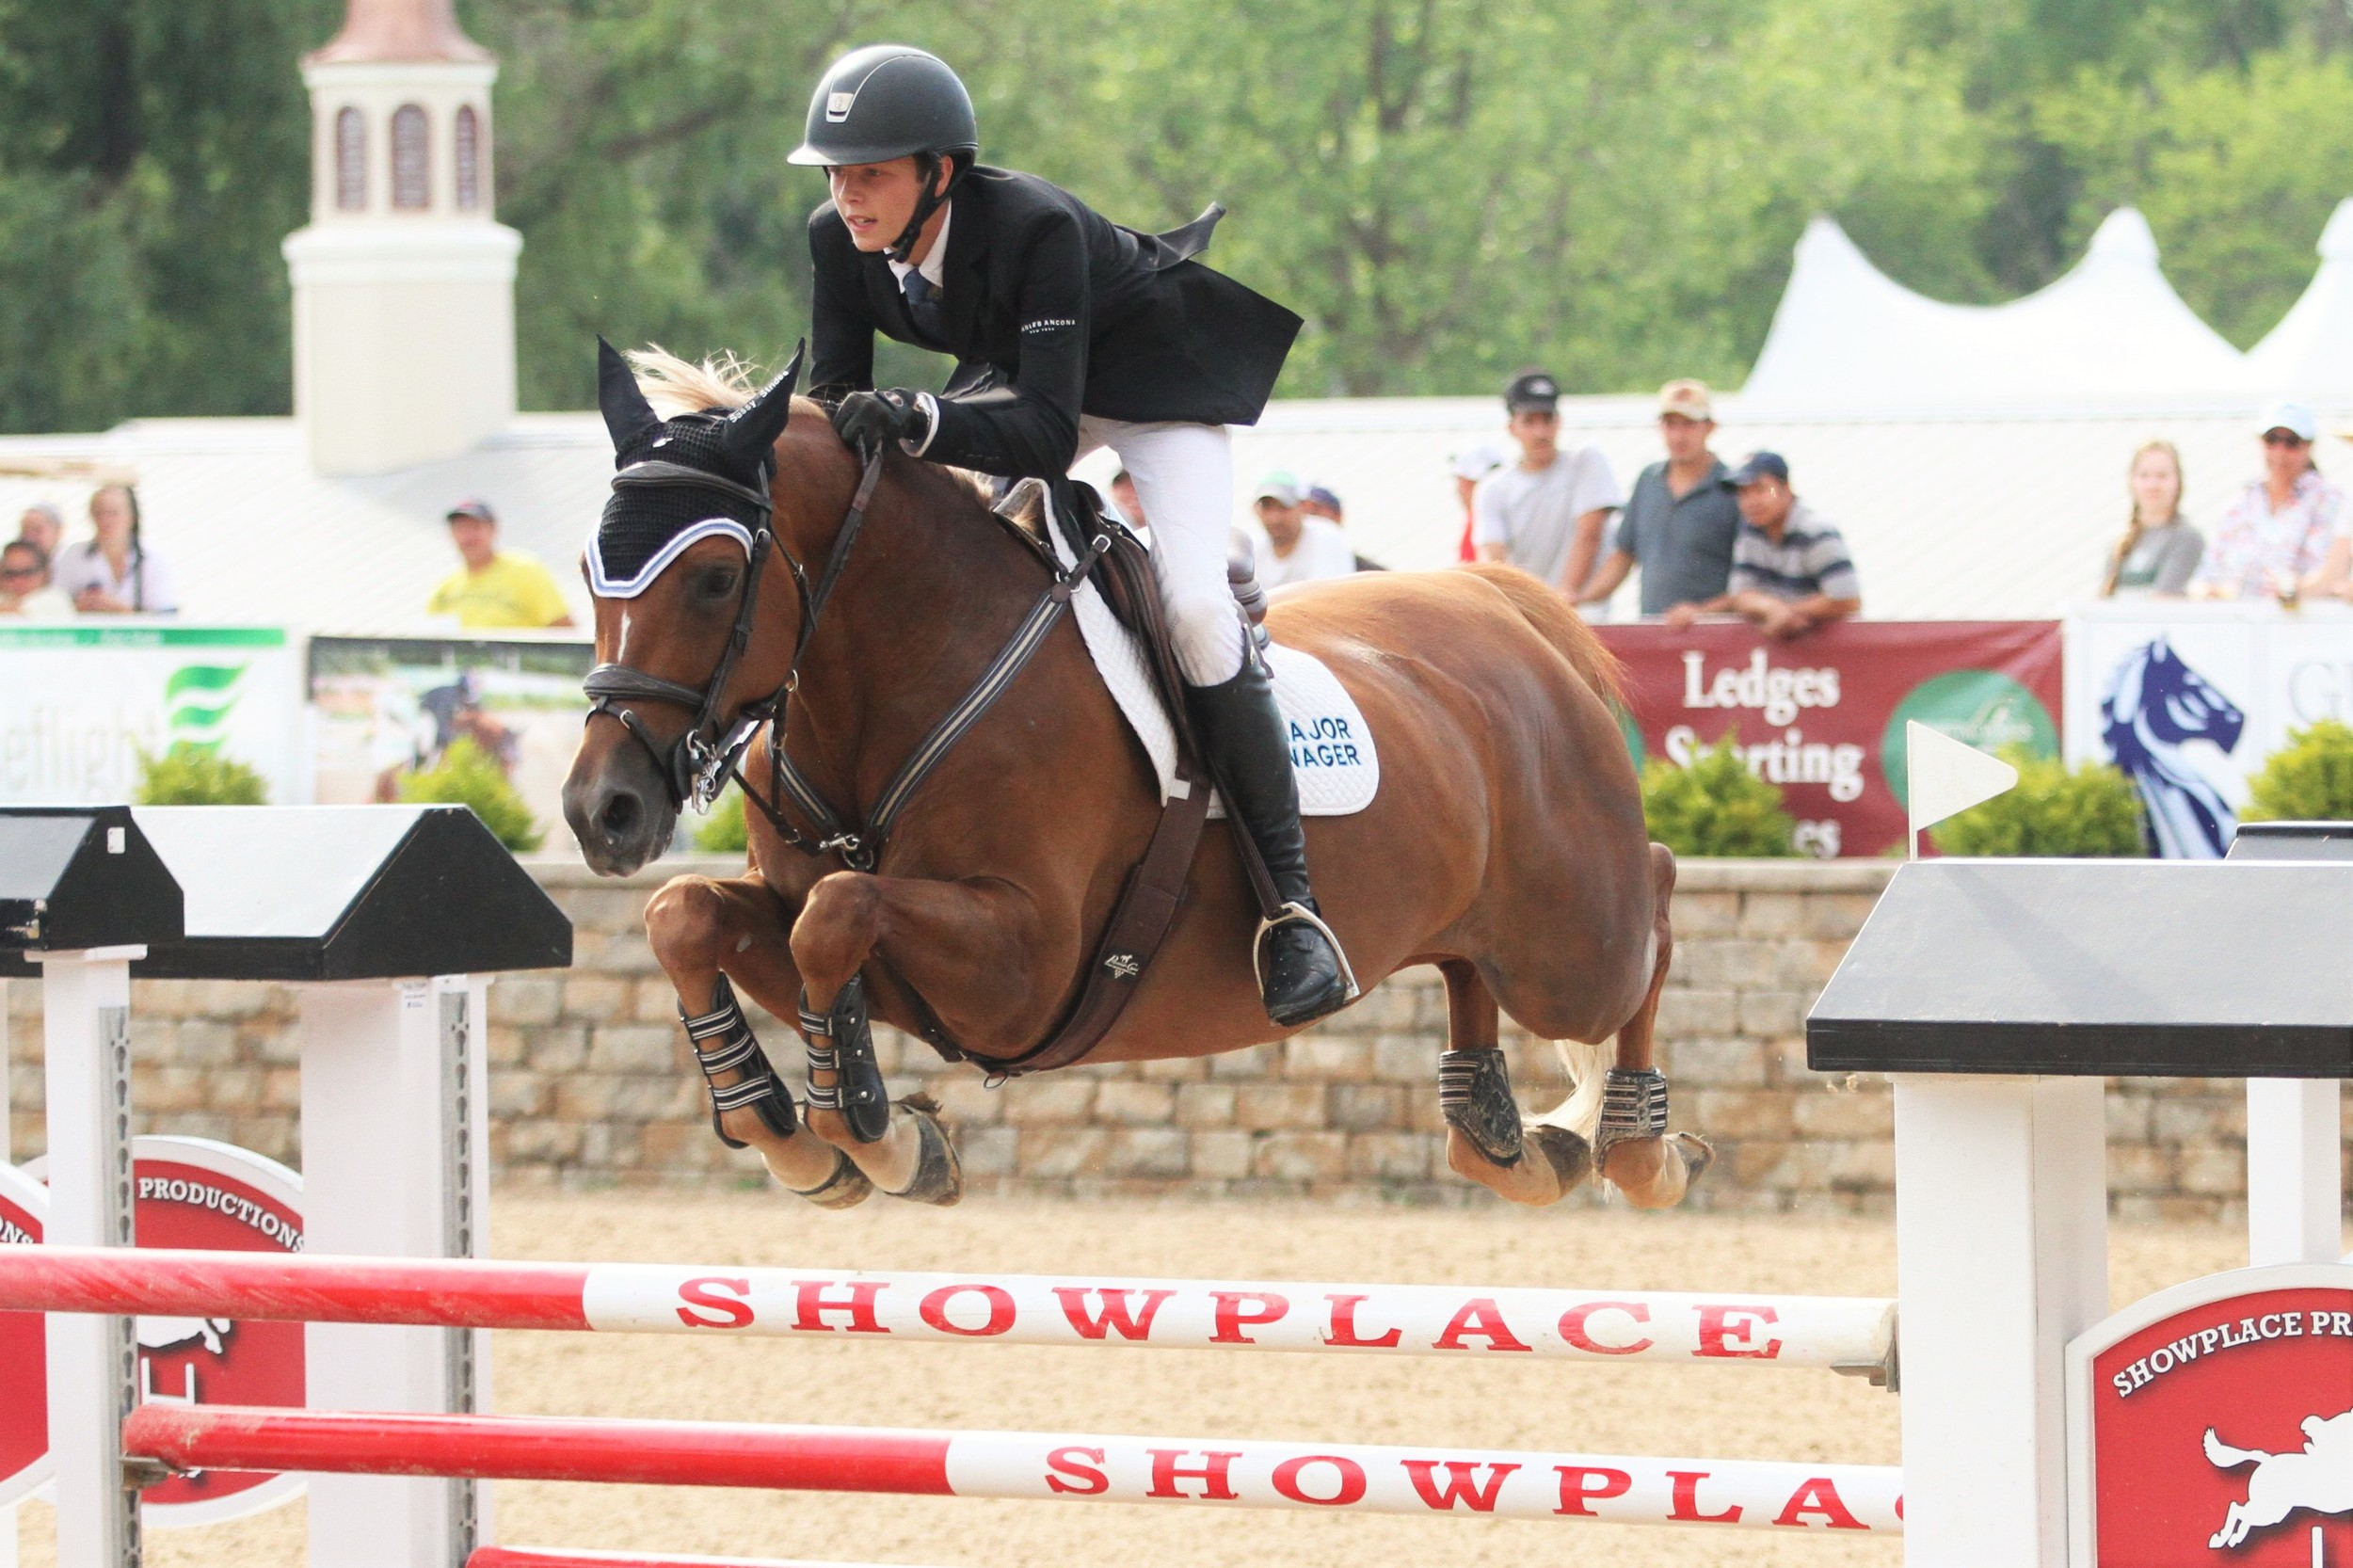 Brian Moggre aboard MTM Flutterby, owned by Major Wager LLC was the youngest competitor in the $40,000 Adequan® Grand Prix